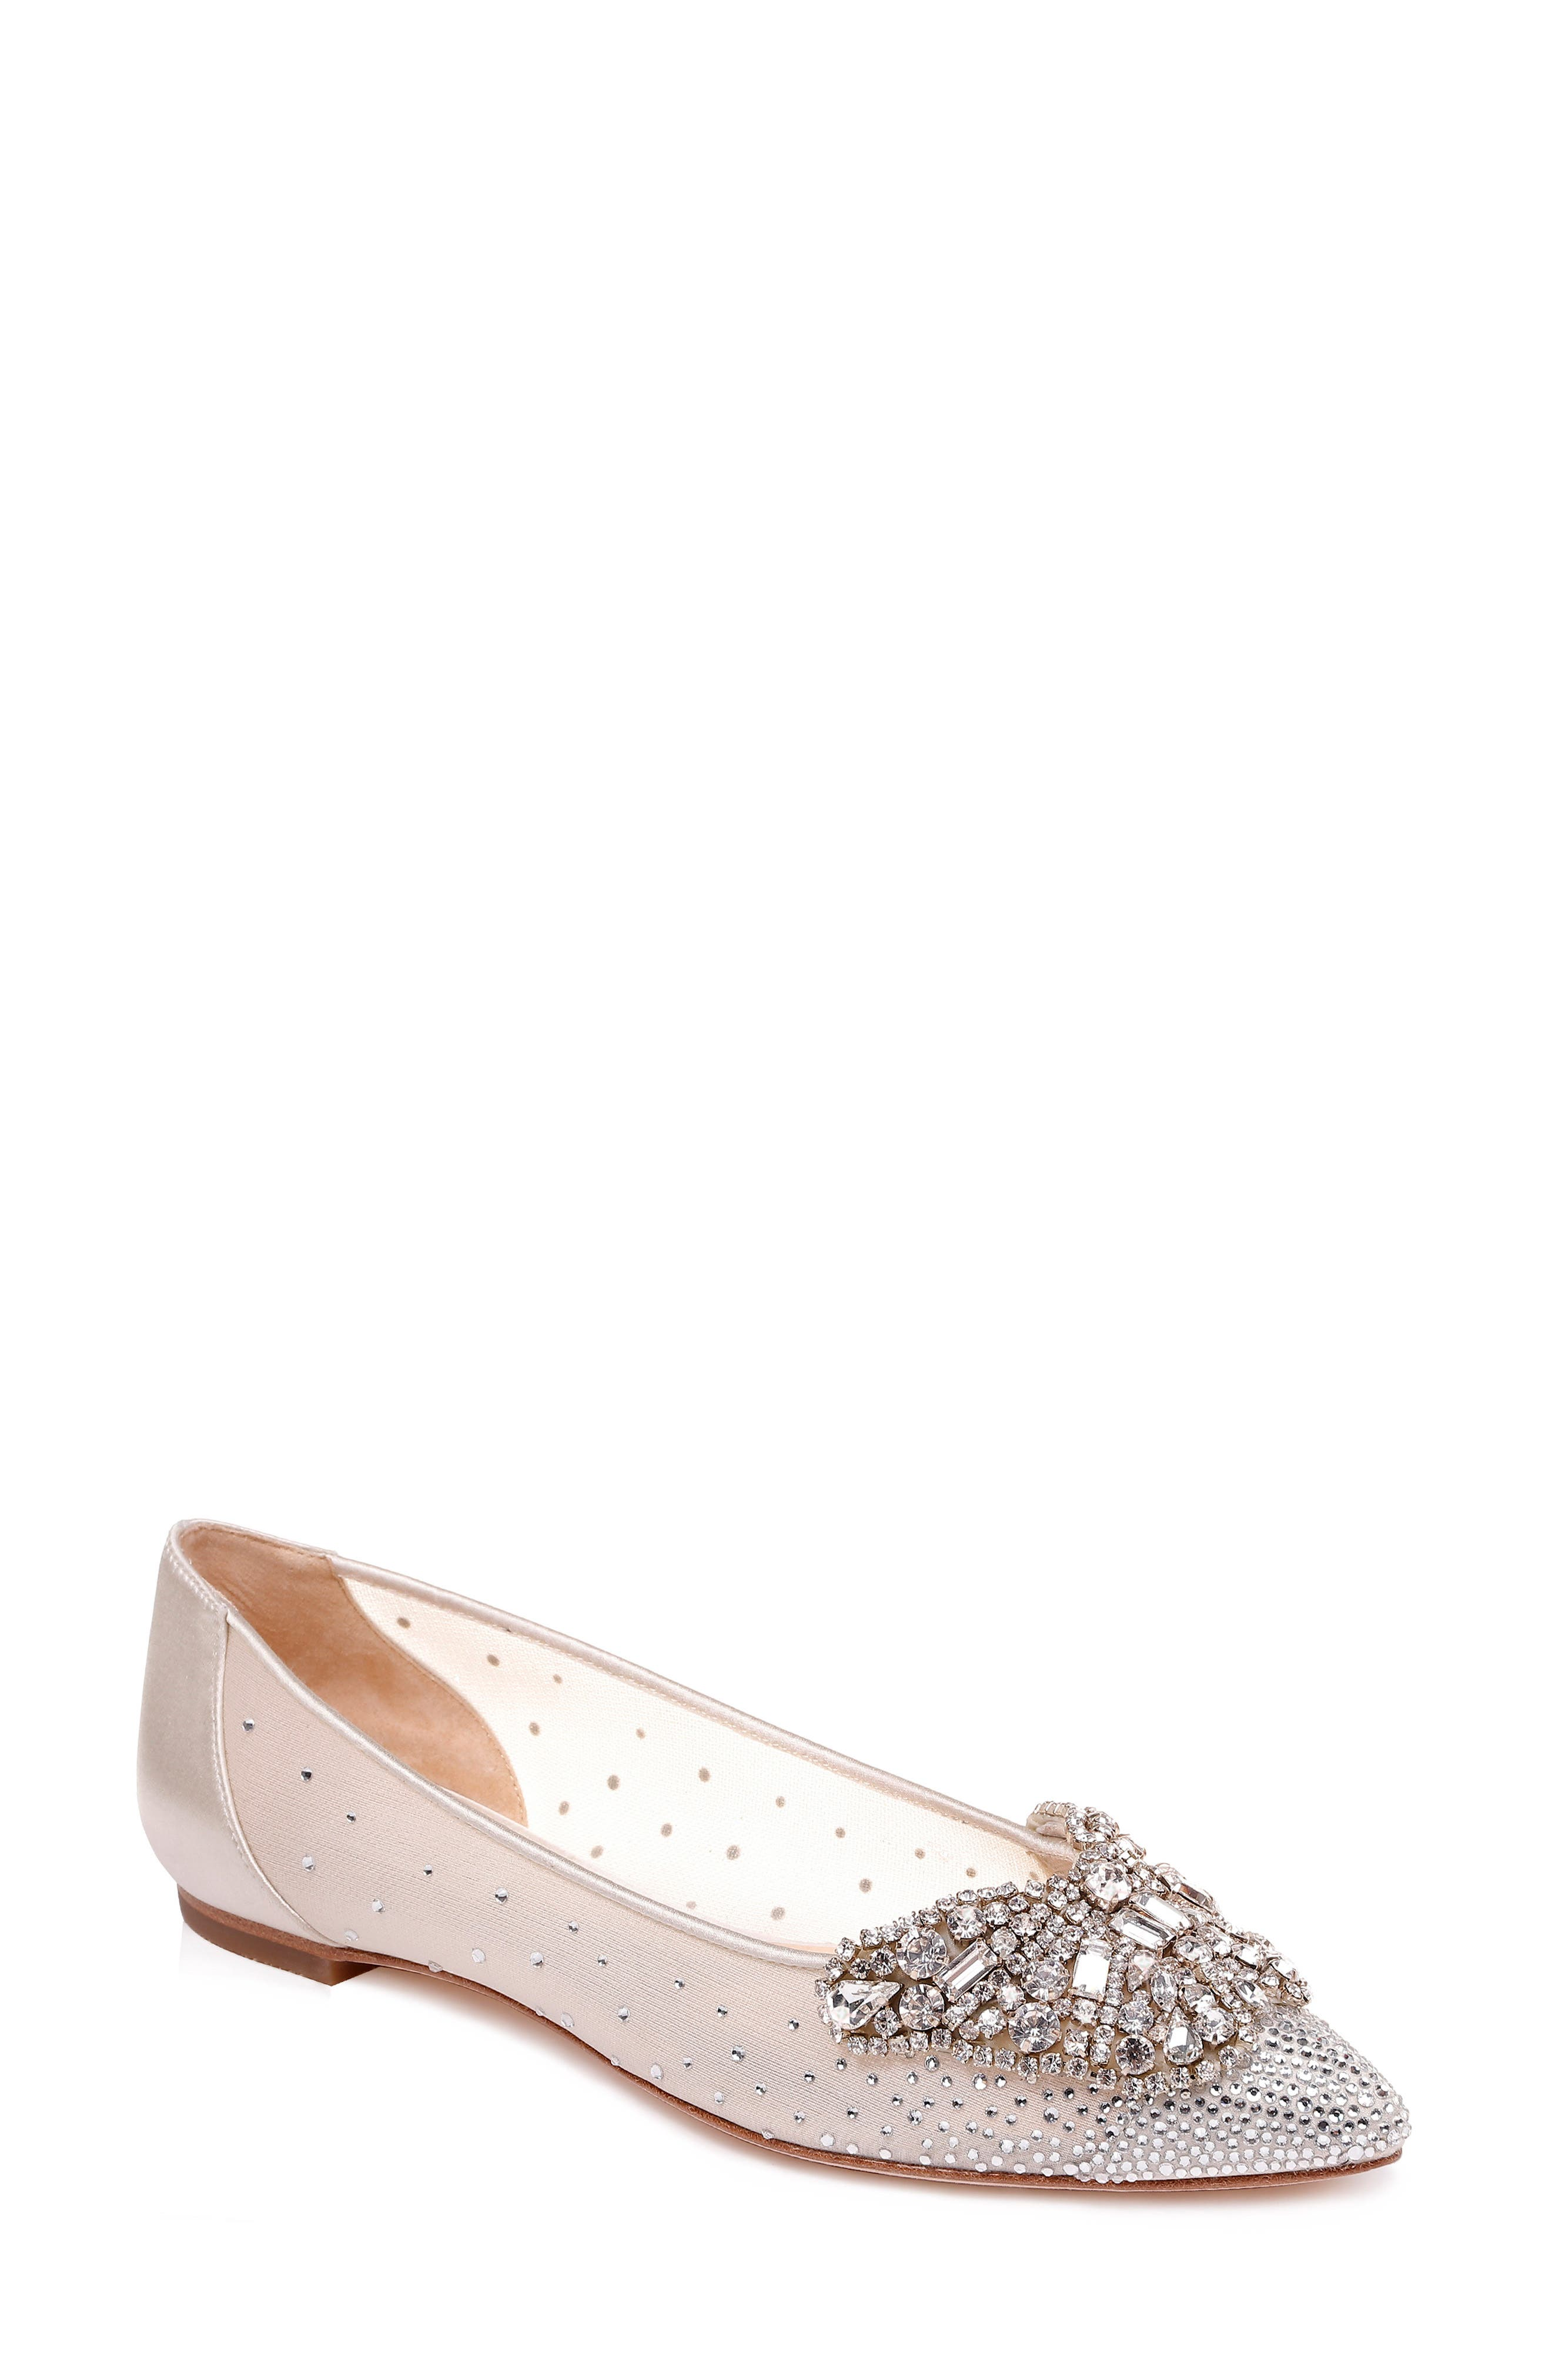 BADGLEY MISCHKA Women'S Quinn Crystal Embellished Pointed Toe Flats in Ivory Satin/ Mesh